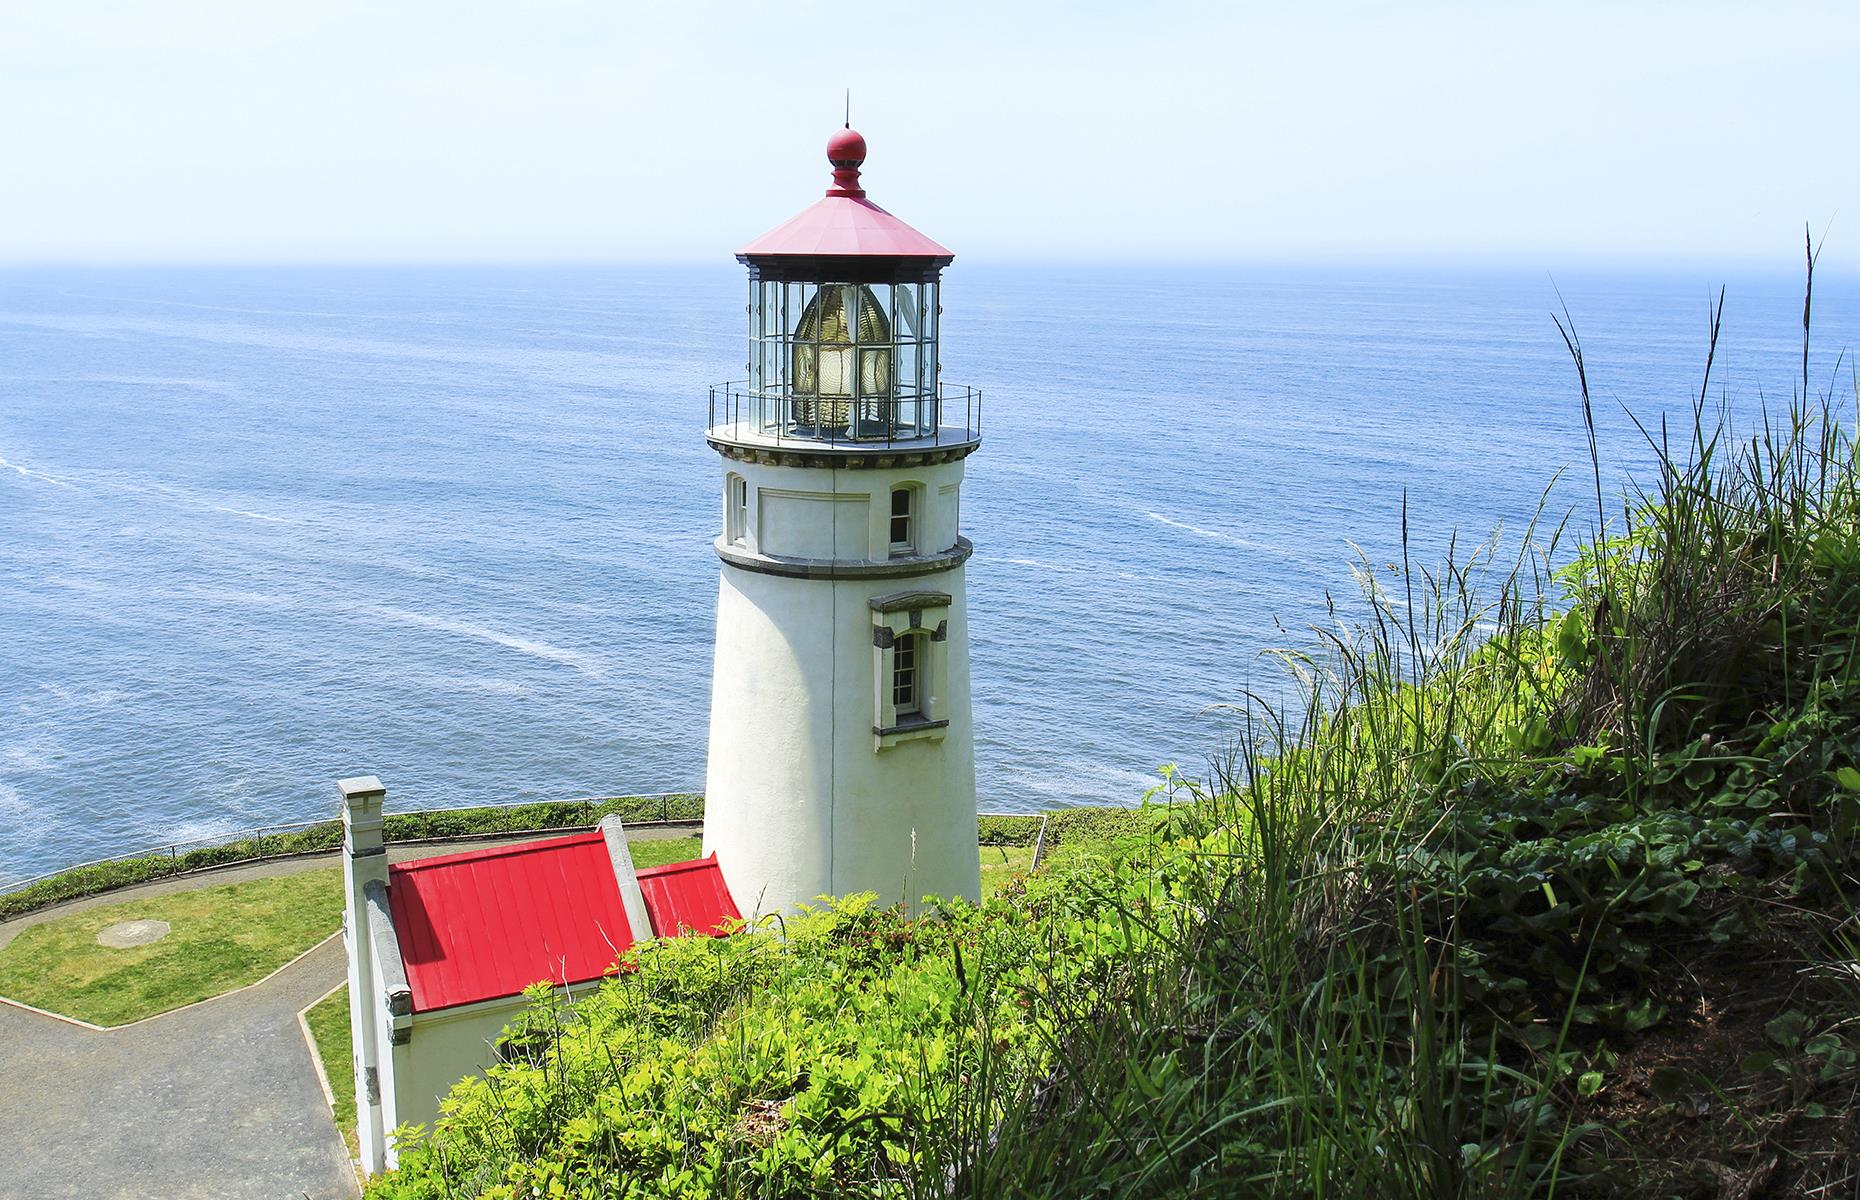 Slide 39 of 52: This beautiful B&B shares its cliffside location with one of Oregon's most famous lighthouses: Heceta Head (pictured). The bed and breakfast, housed in the Heceta Head lightkeeper's home, commands stunning views of the Pacific Ocean, and offers access to the beach and lighthouse via a sloping path. The lovely rooms each have their own special angle on the surrounding landscape – of waves crashing on basalt rocks, the lighthouse piercing the sky, or the sun-dappled garden. Breakfast isn't just fruit and cereal, either – it's seven courses that includes local sausages, pungent cheeses and more. The website has details on current operational changes, including the availability of meals to go.